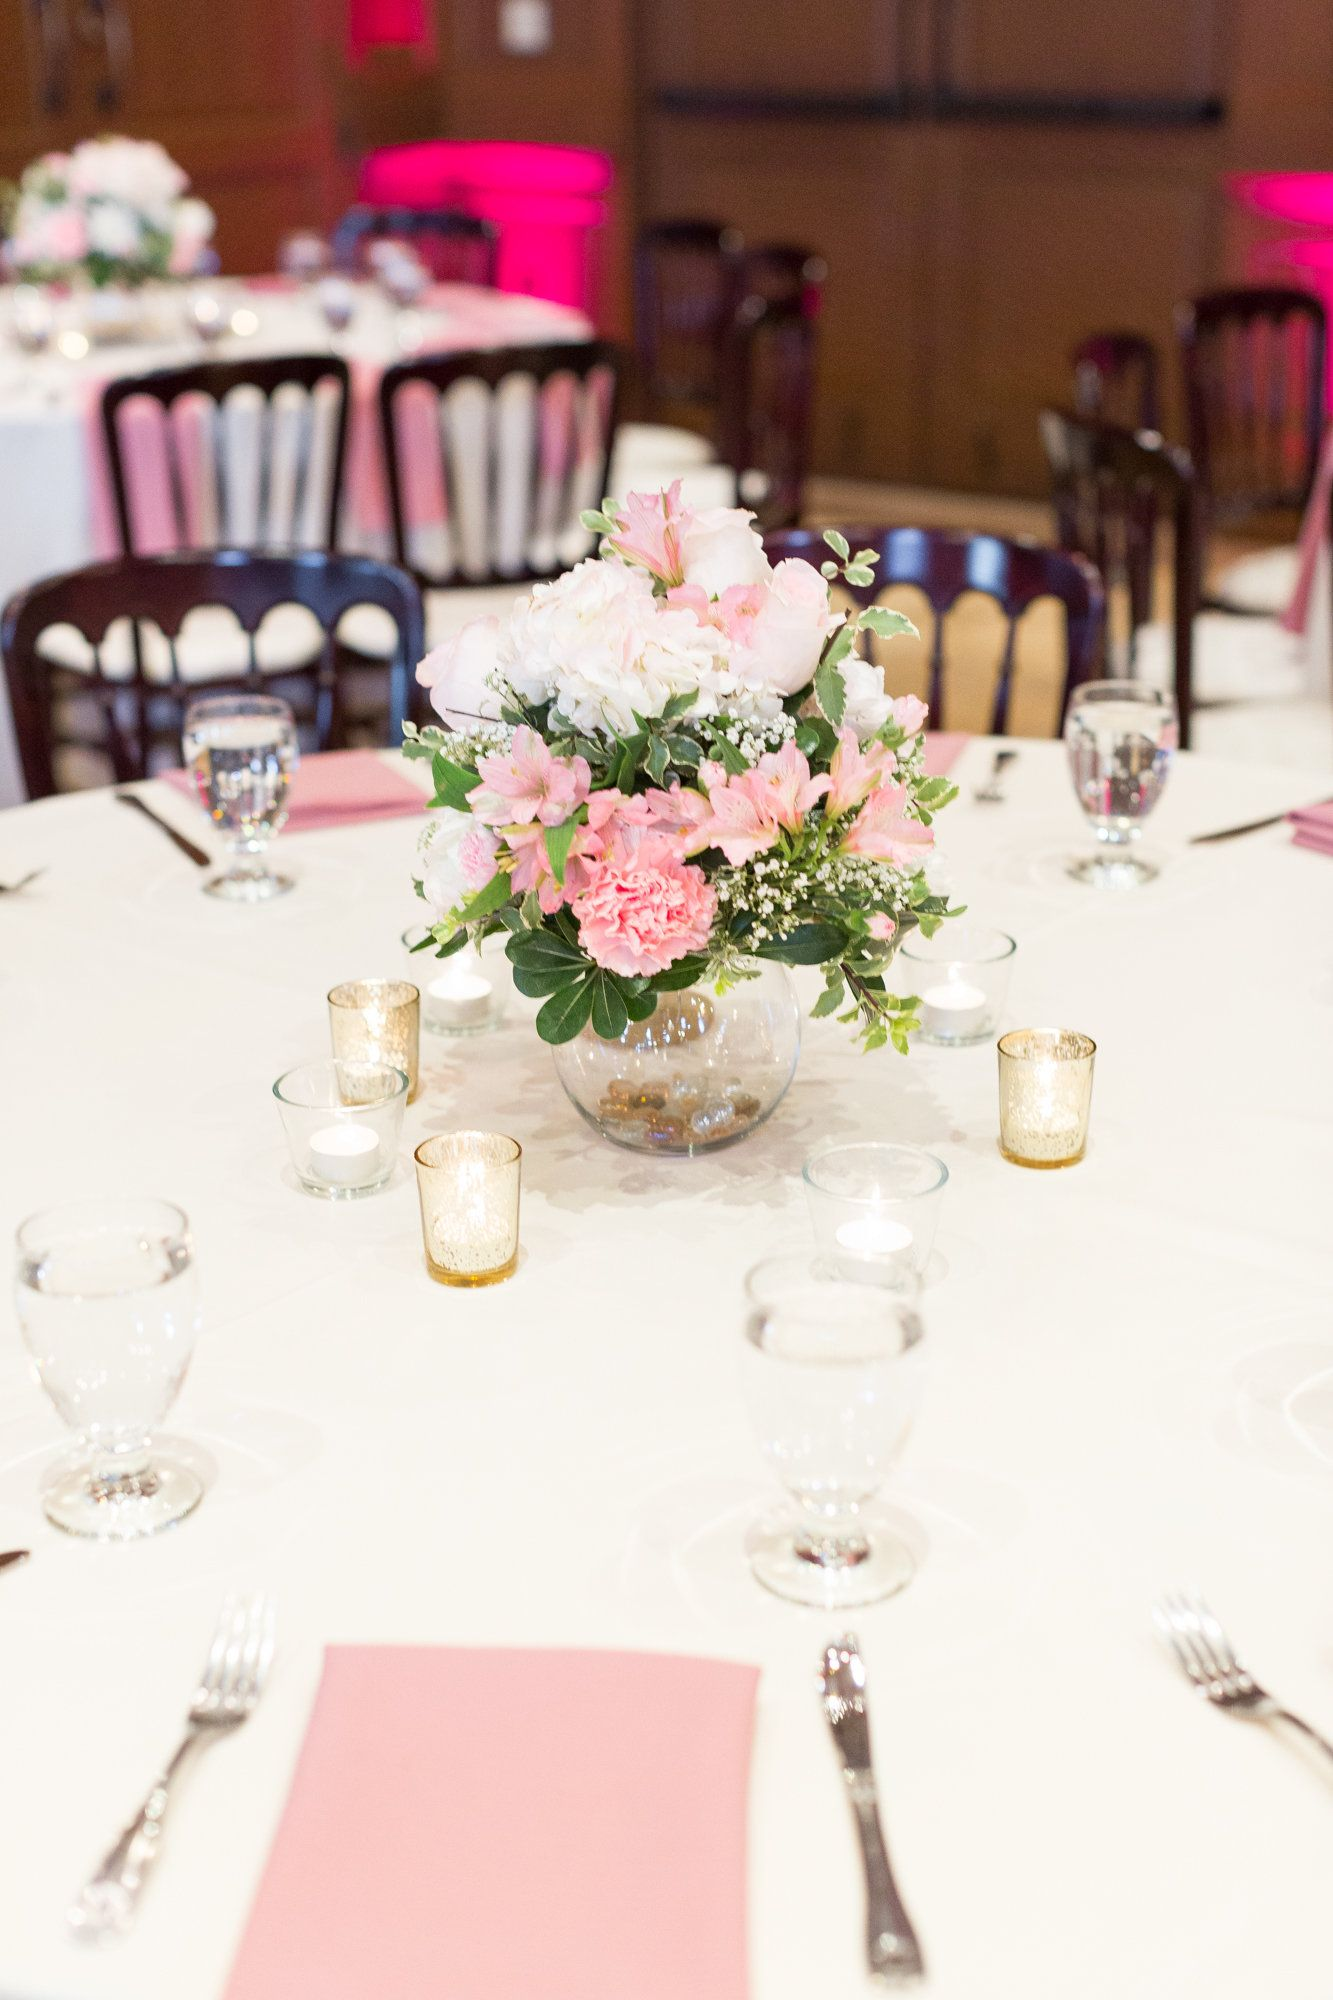 Elegant centerpiece with pink car carnations and white hydrangeas ...